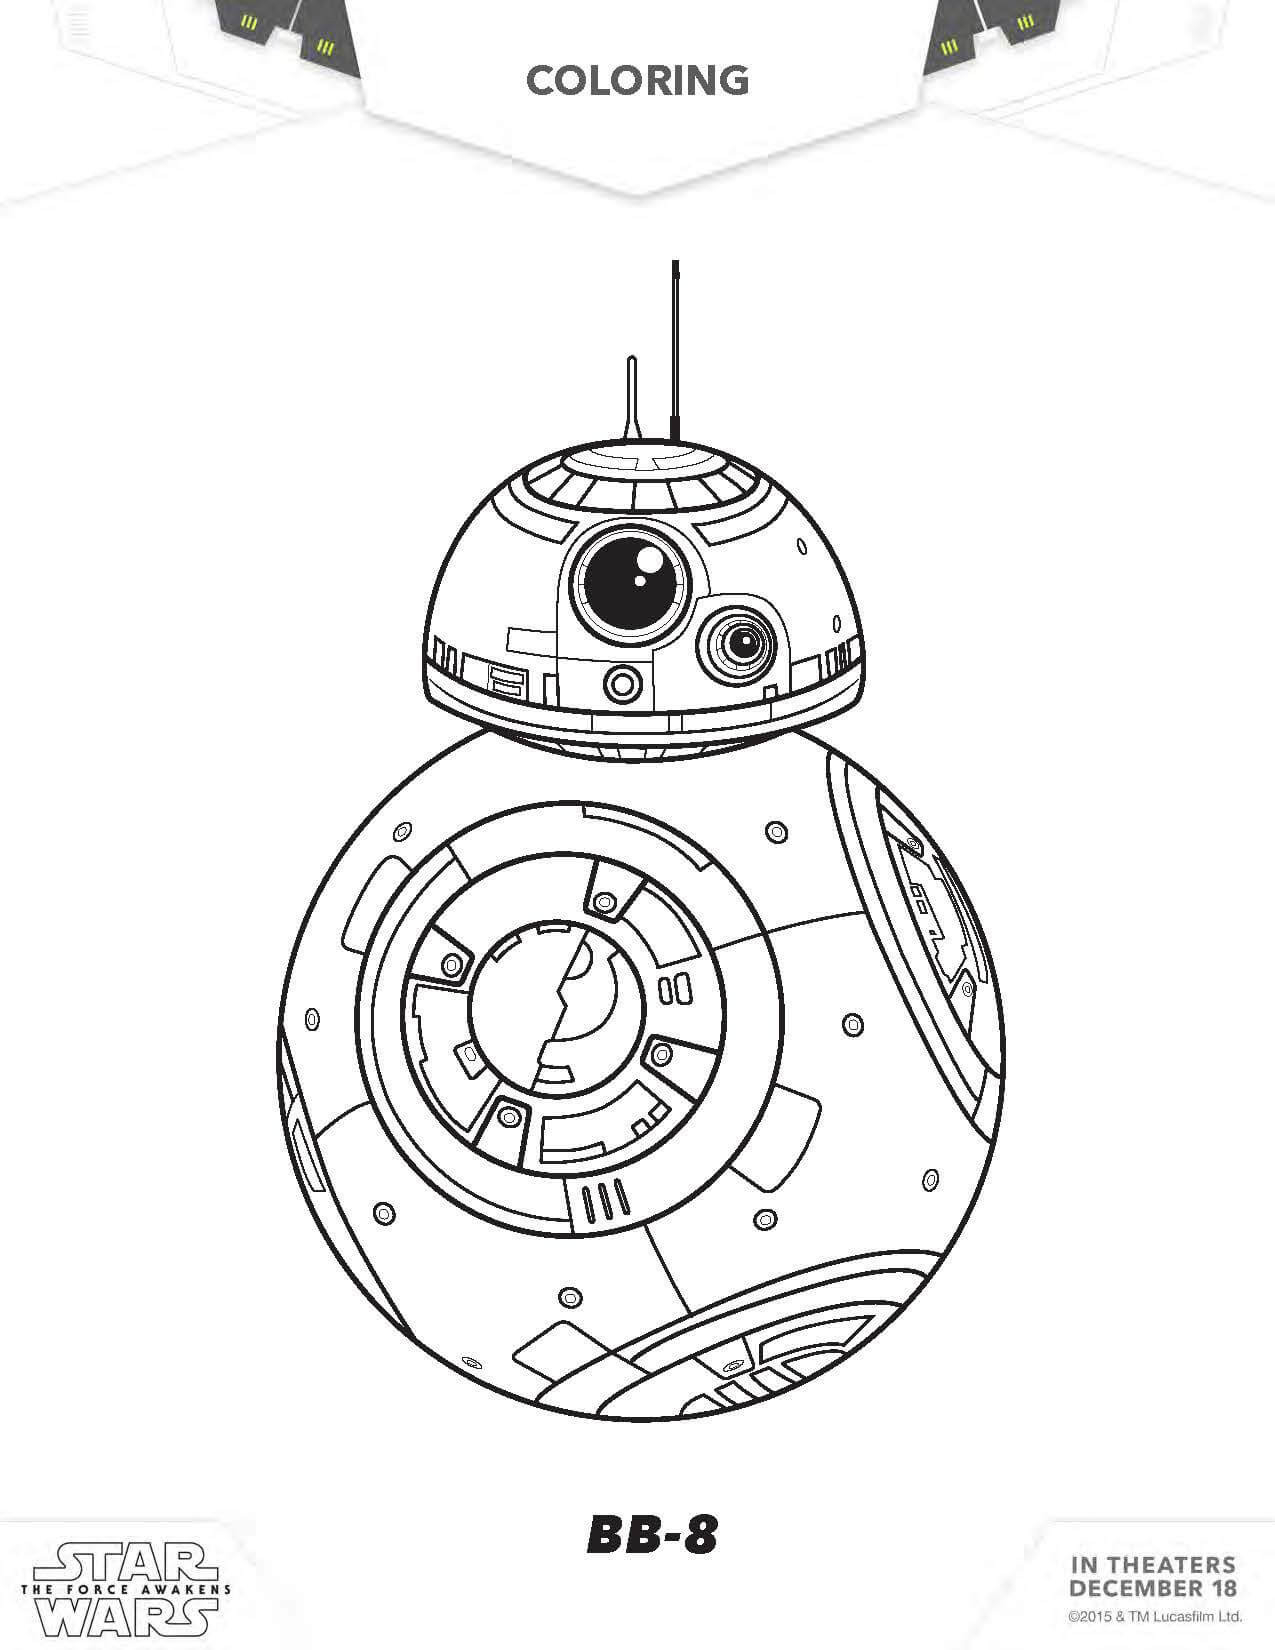 star wars the force awakens coloring pages Collection-Star Wars Coloring Book Pages 19 Luxury Stormtrooper Coloring Page 7-f